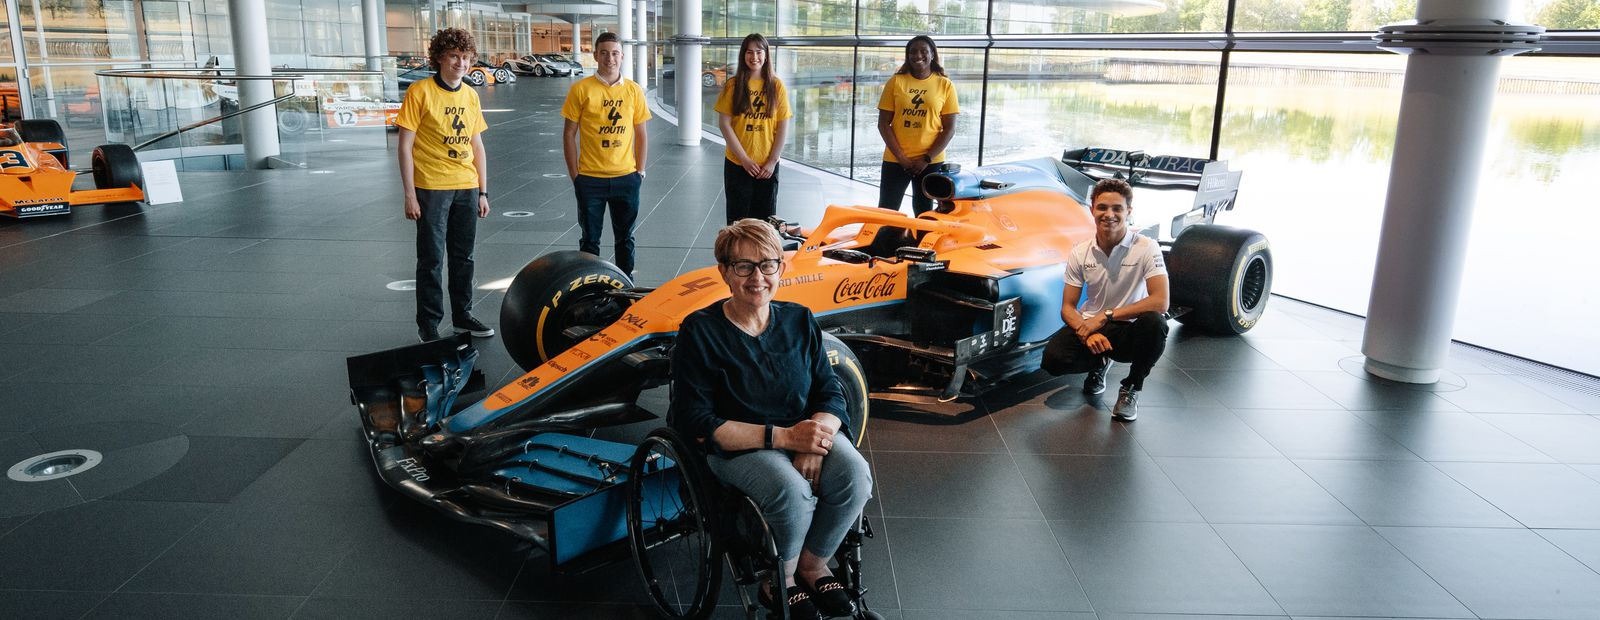 McLaren Racing supports Do It 4 Youth in partnership with the Duke of Edinburgh's Award